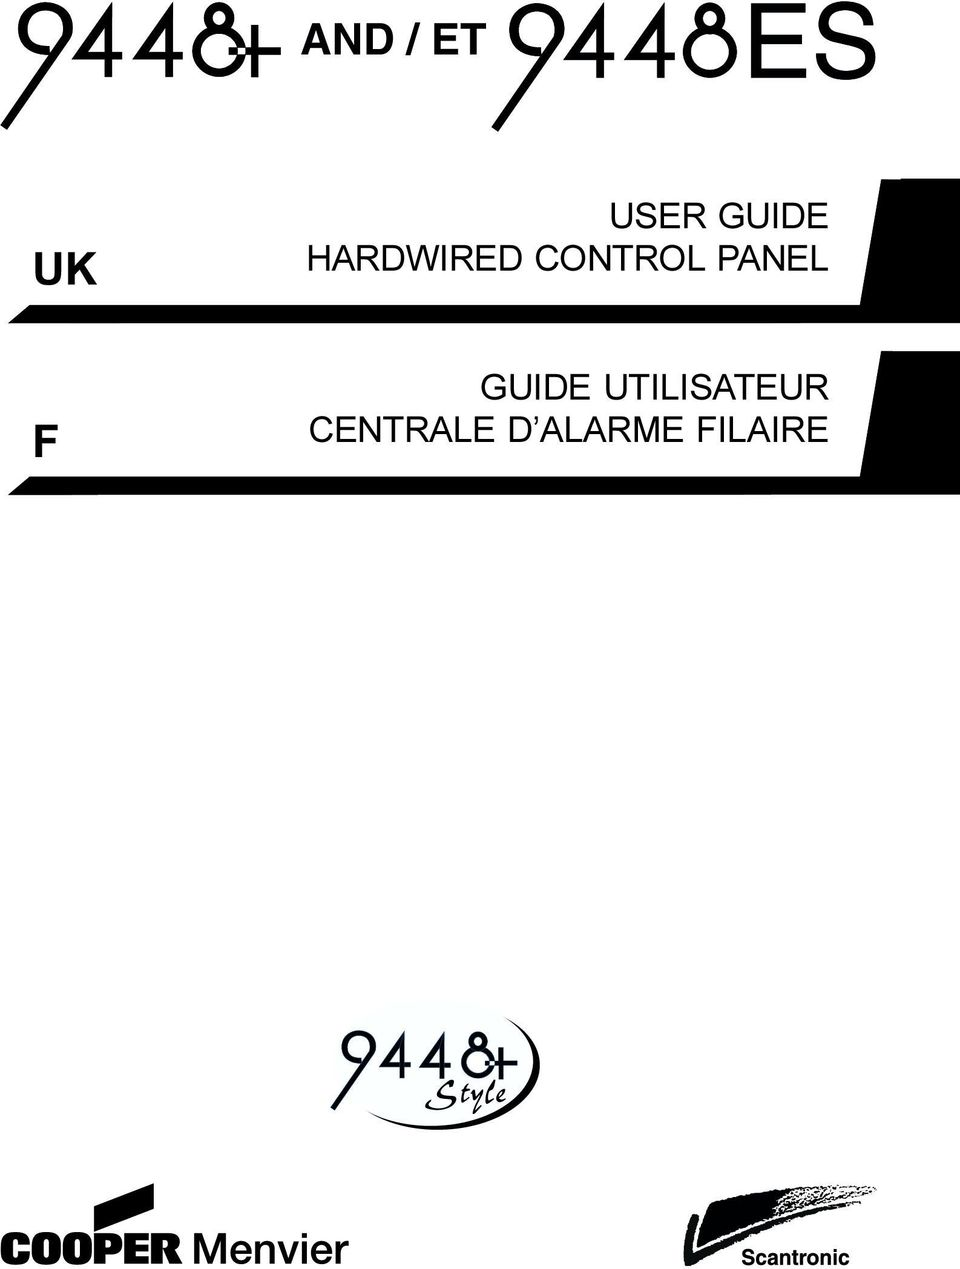 and et user guide uk hardwired control panel uk guide utilisateur centrale d alarme filaire f. Black Bedroom Furniture Sets. Home Design Ideas